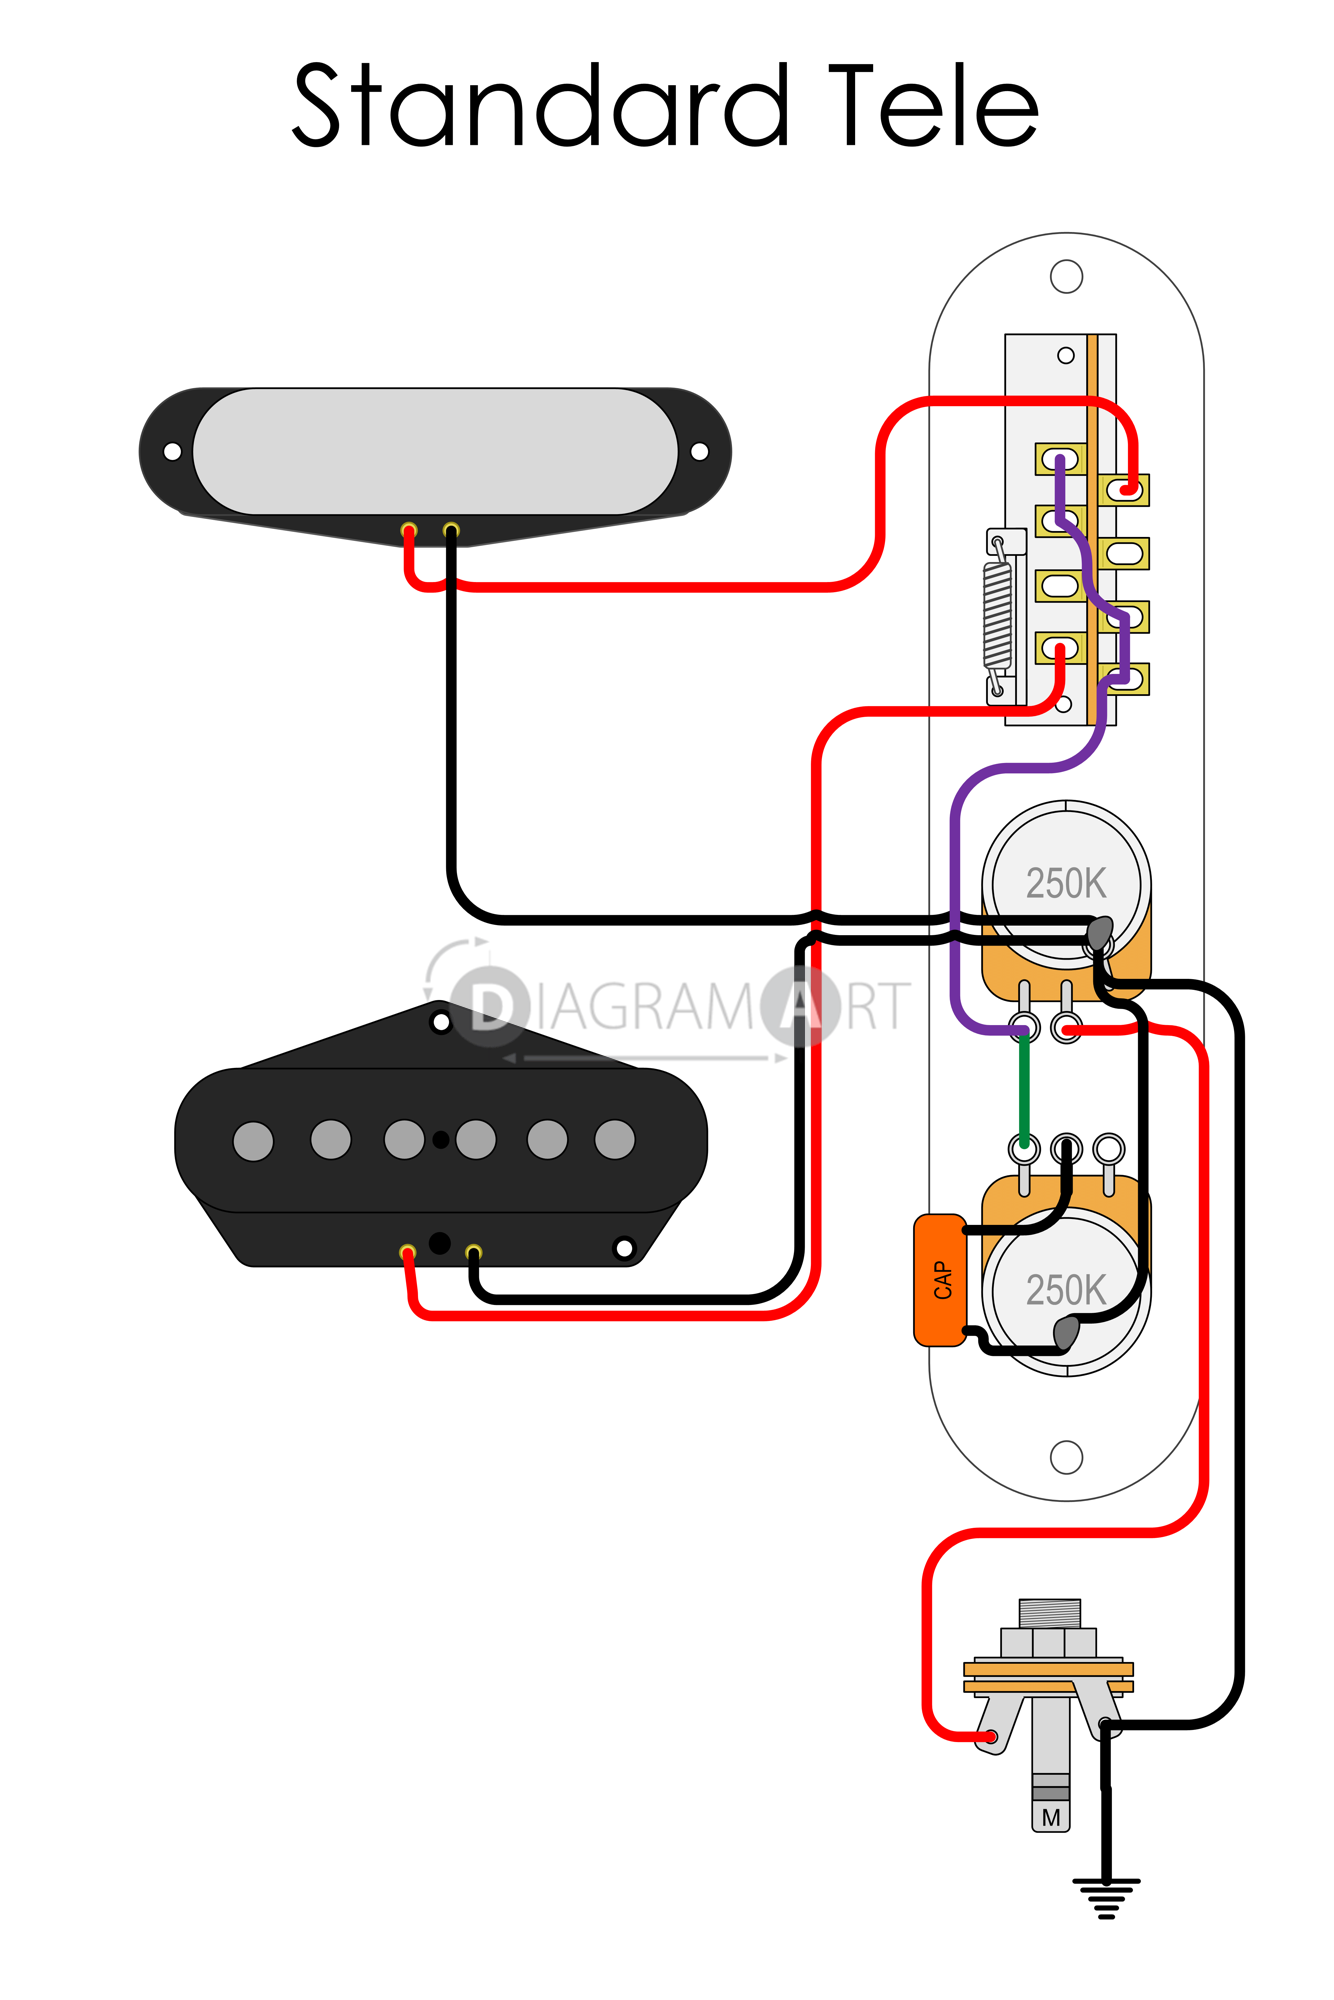 Standard Telecaster Wiring Diagram Electrical Largest Schematic For Modern Electric Guitar Tele Circuit Diagramart Rh Com Basic